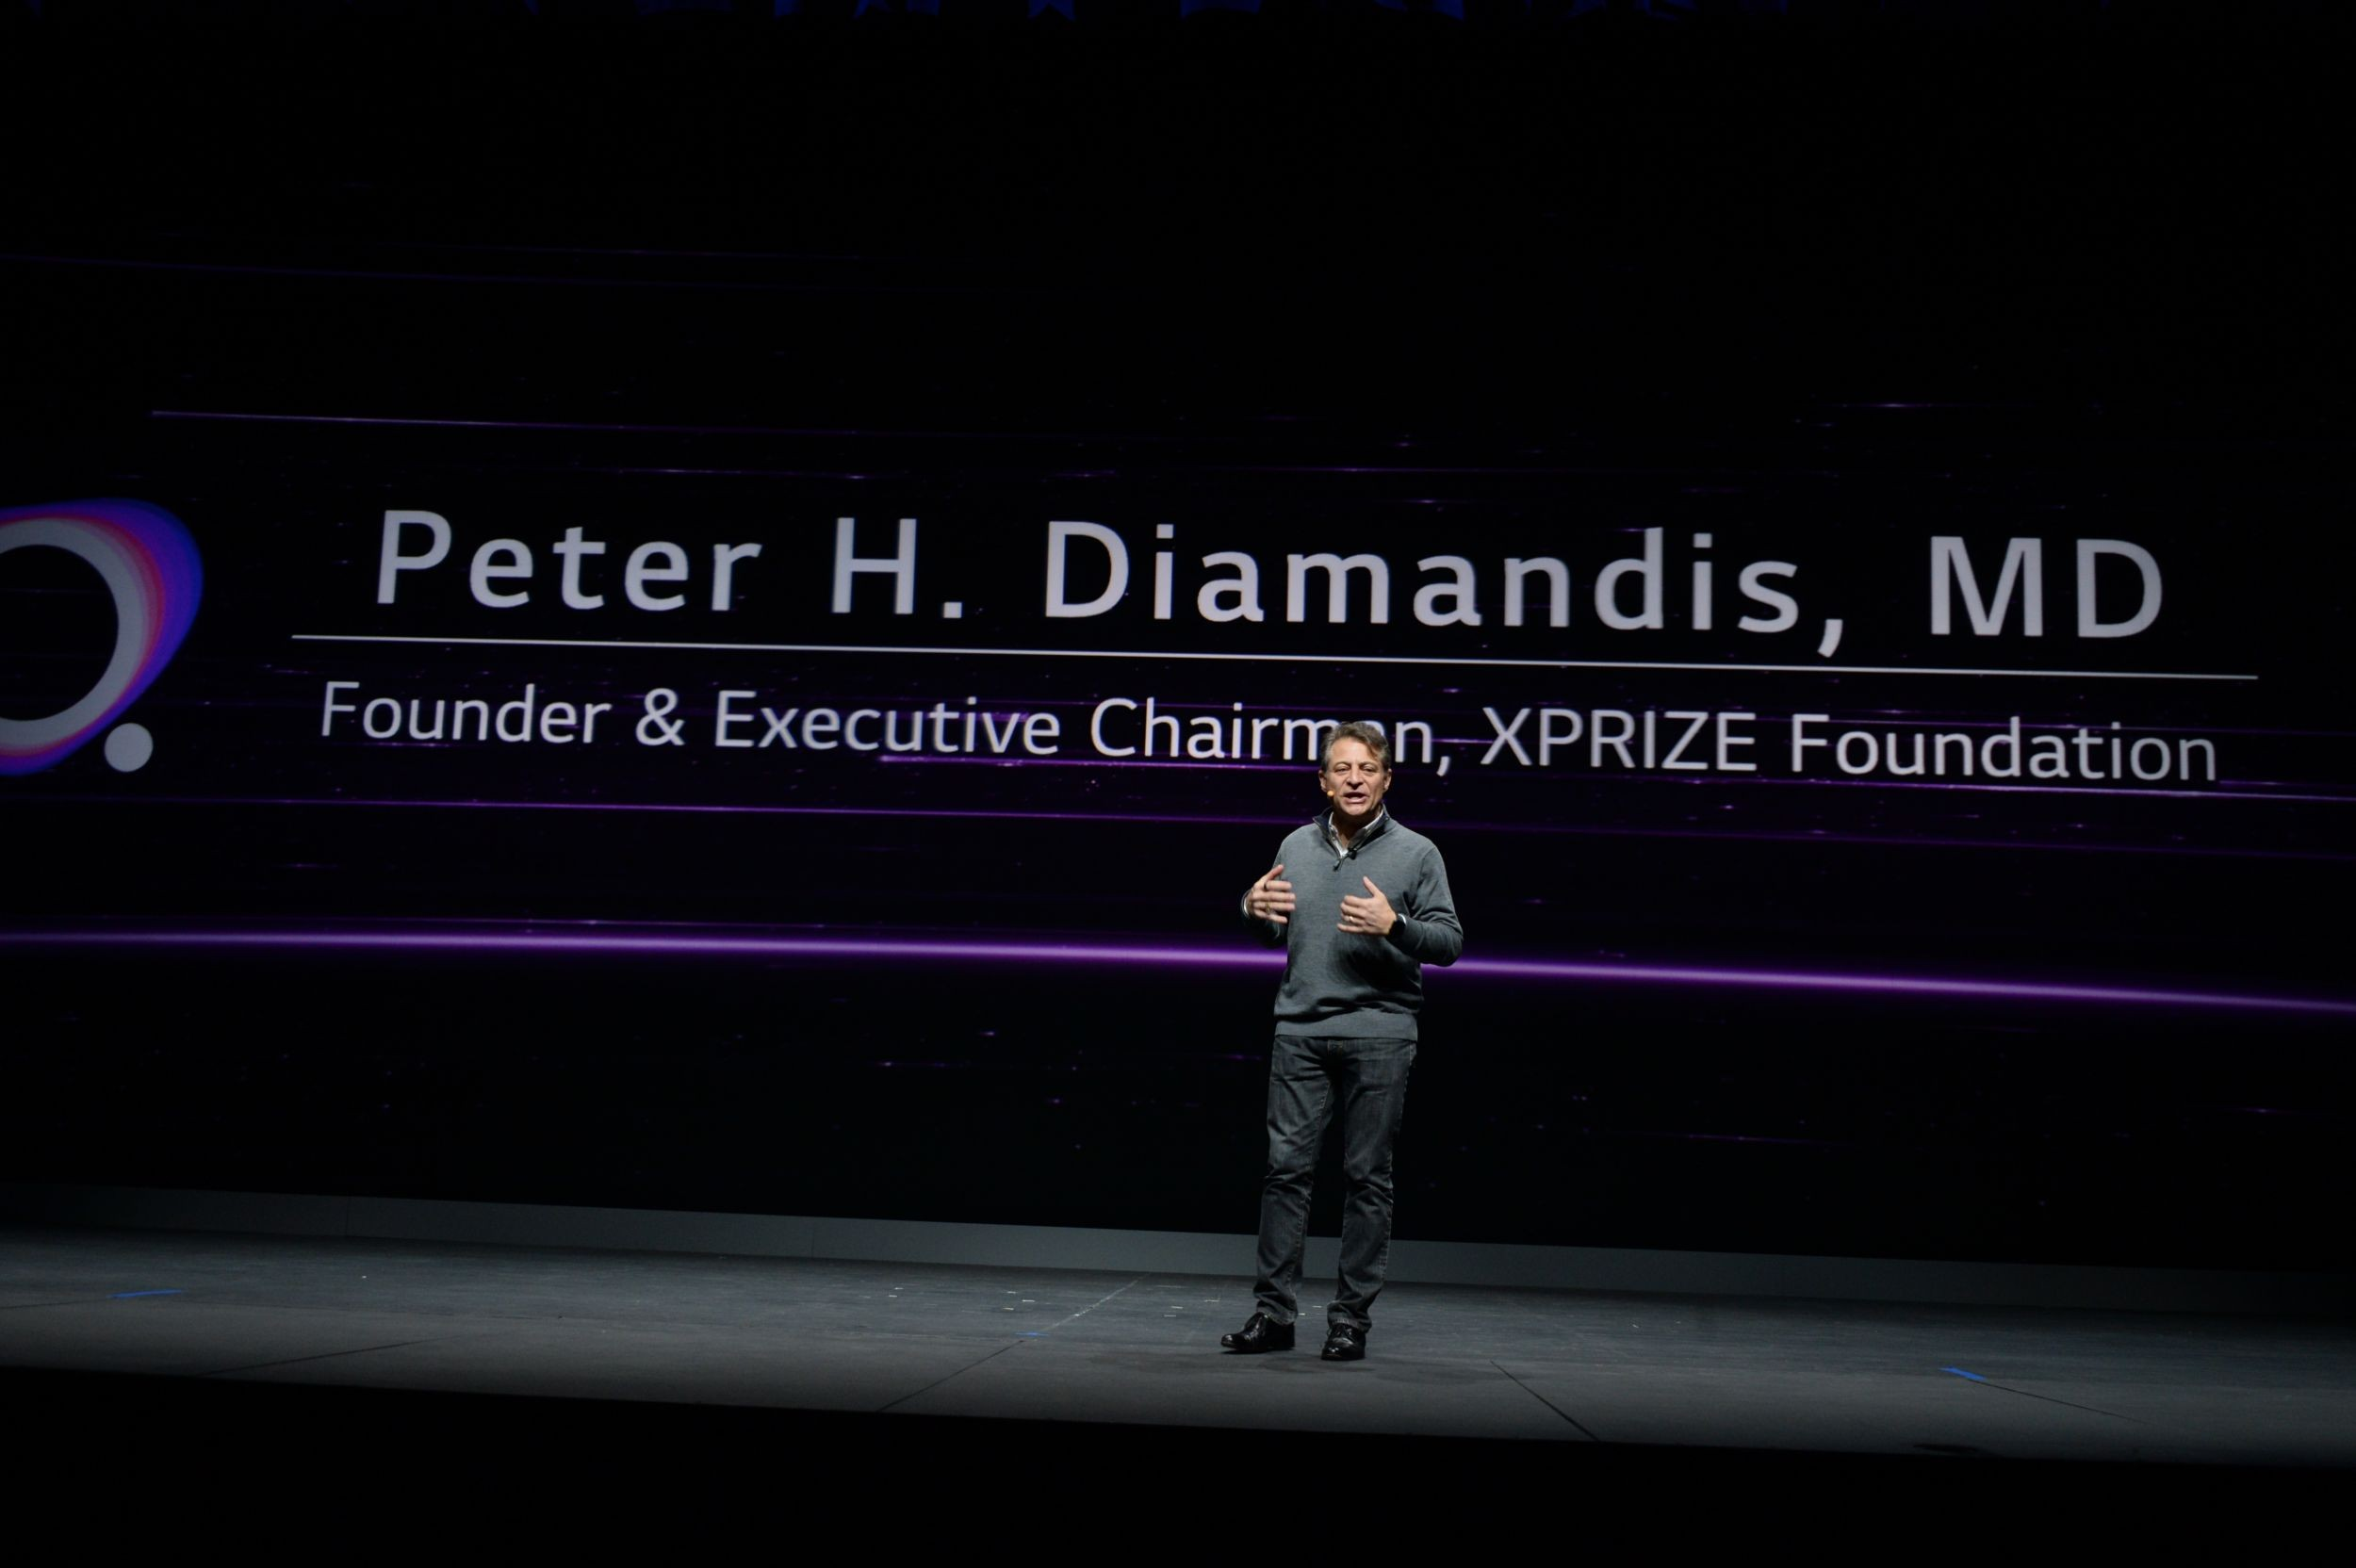 Dr. Peter Diamandis, founder of the XPRIZE Foundation, delivers the keynote address.